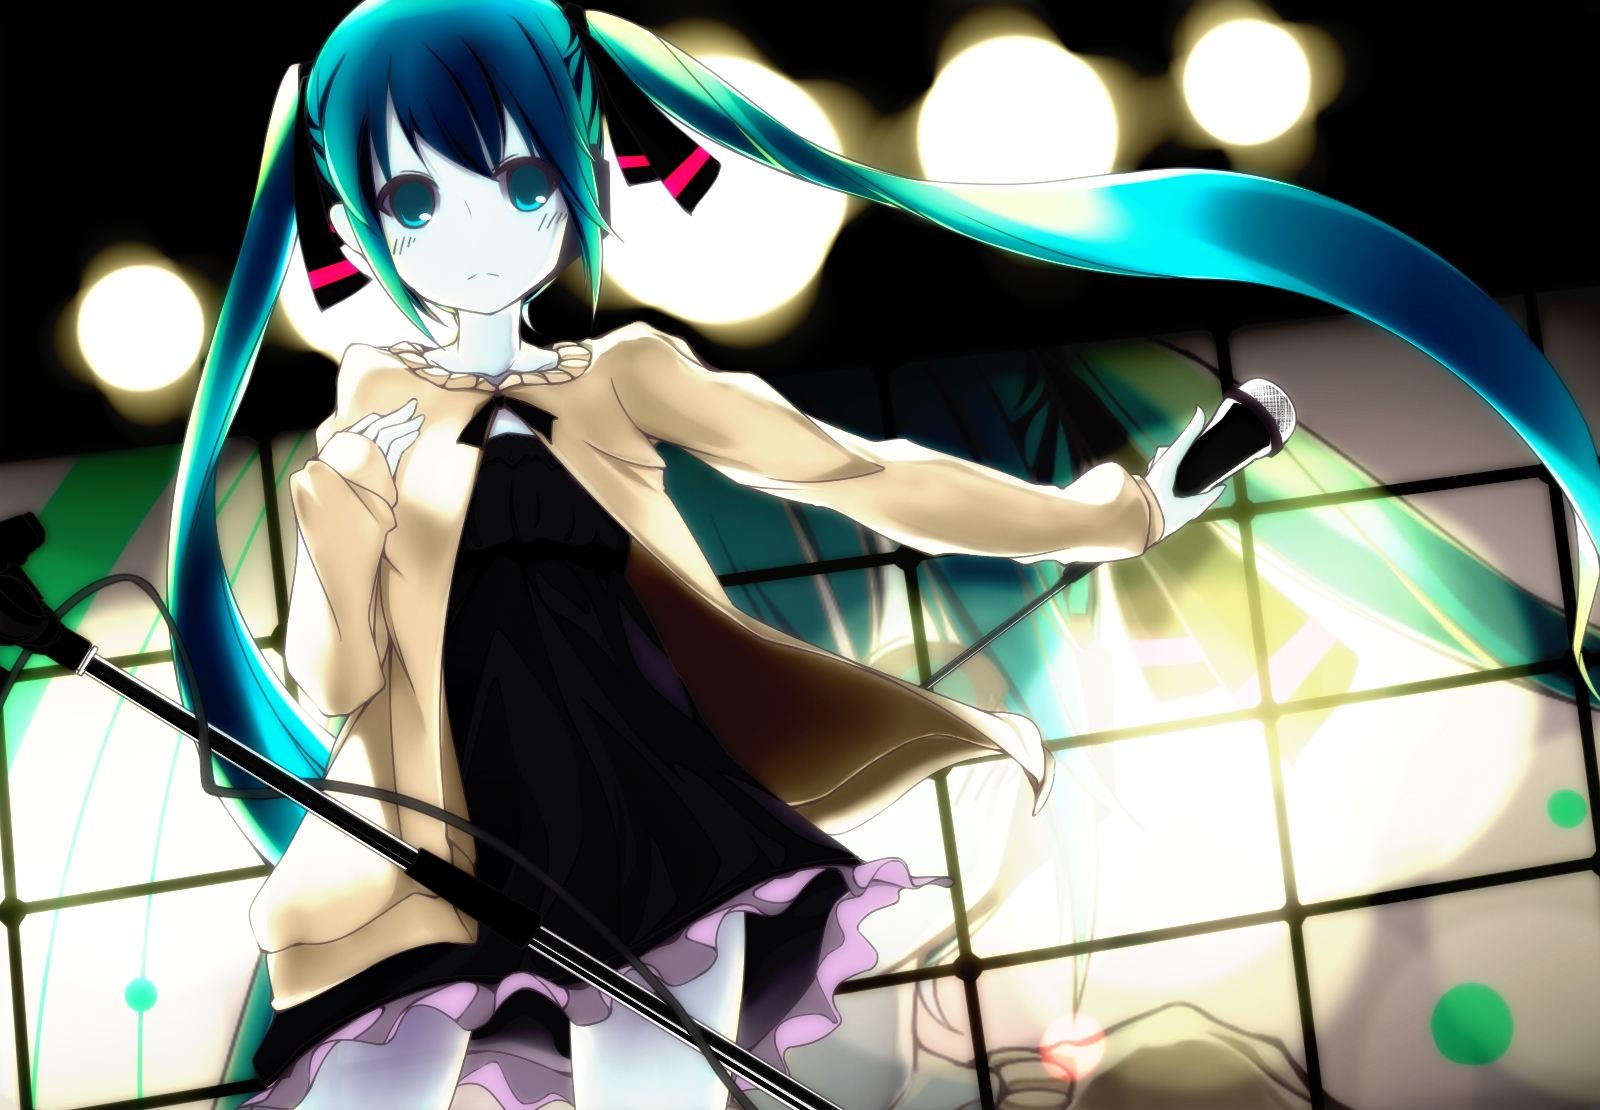 hatsune_miku twintails vocaloid